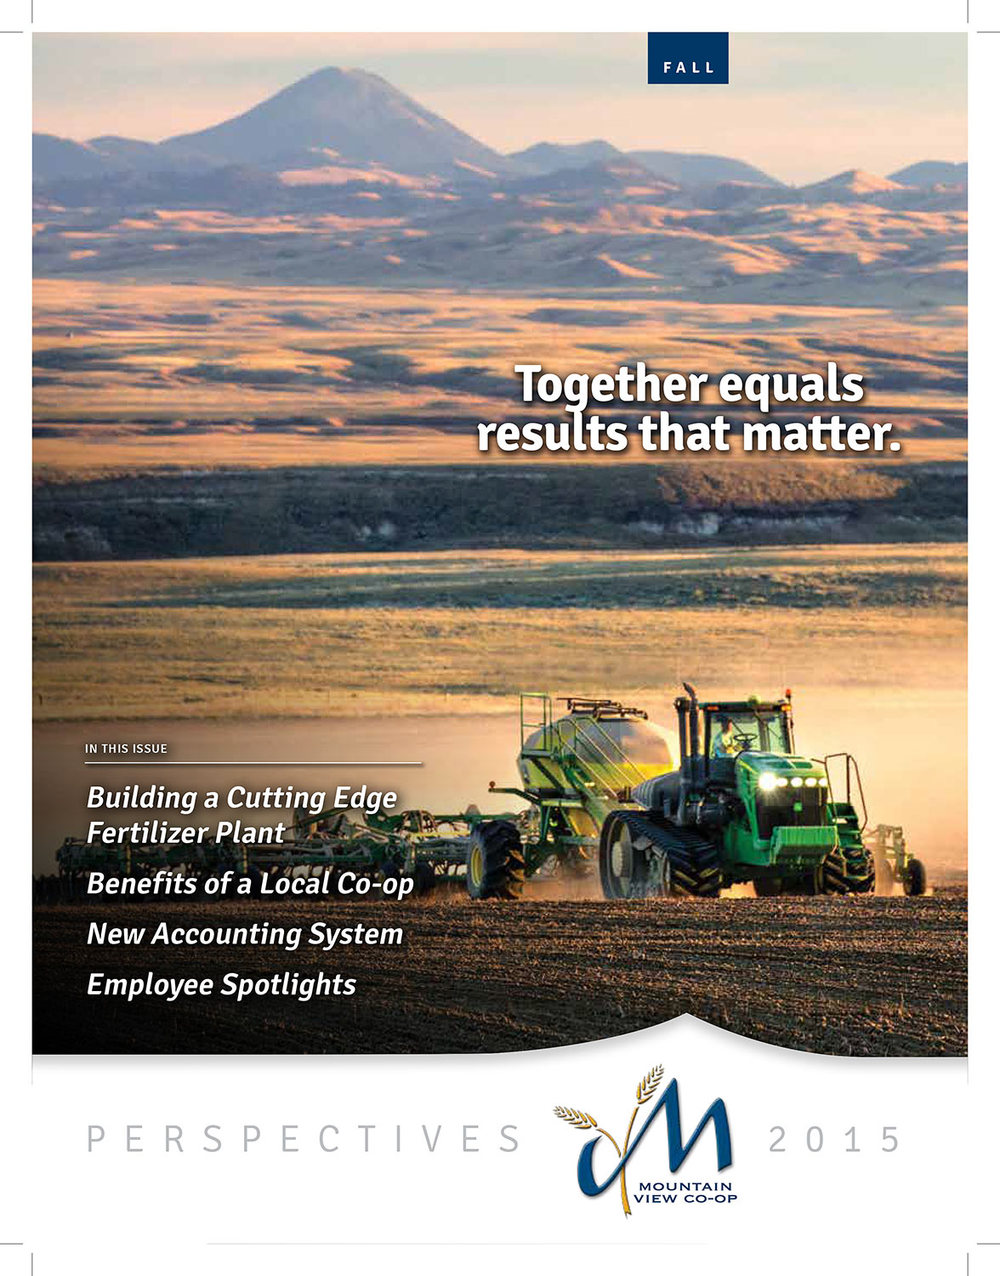 This is one of my agricultural photos published on the cover of the rural Mountain View Co-op autumn 2015 quarterly publication.